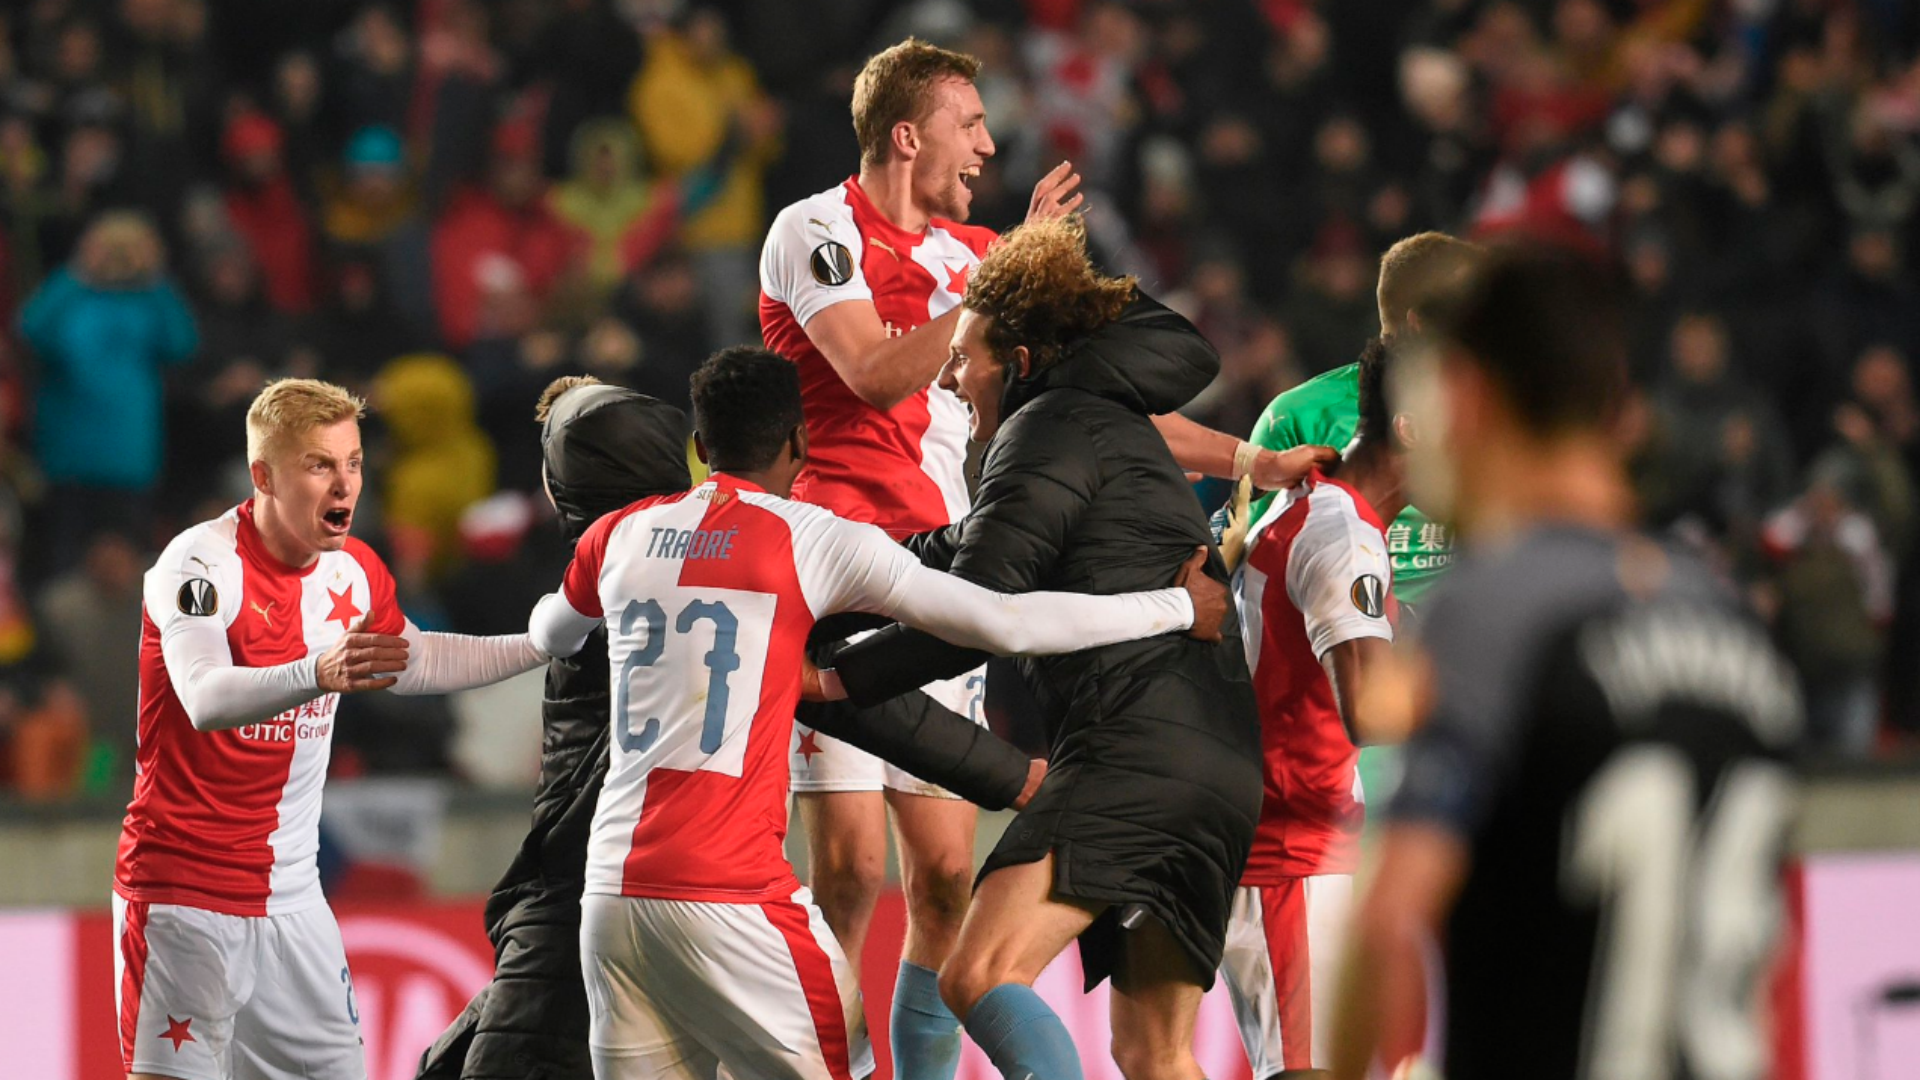 Slavia Prague beat Sevilla 4-3 in their second leg, and 6-5 on aggregate, to secure their place in the quarter-finals of the Europa League.